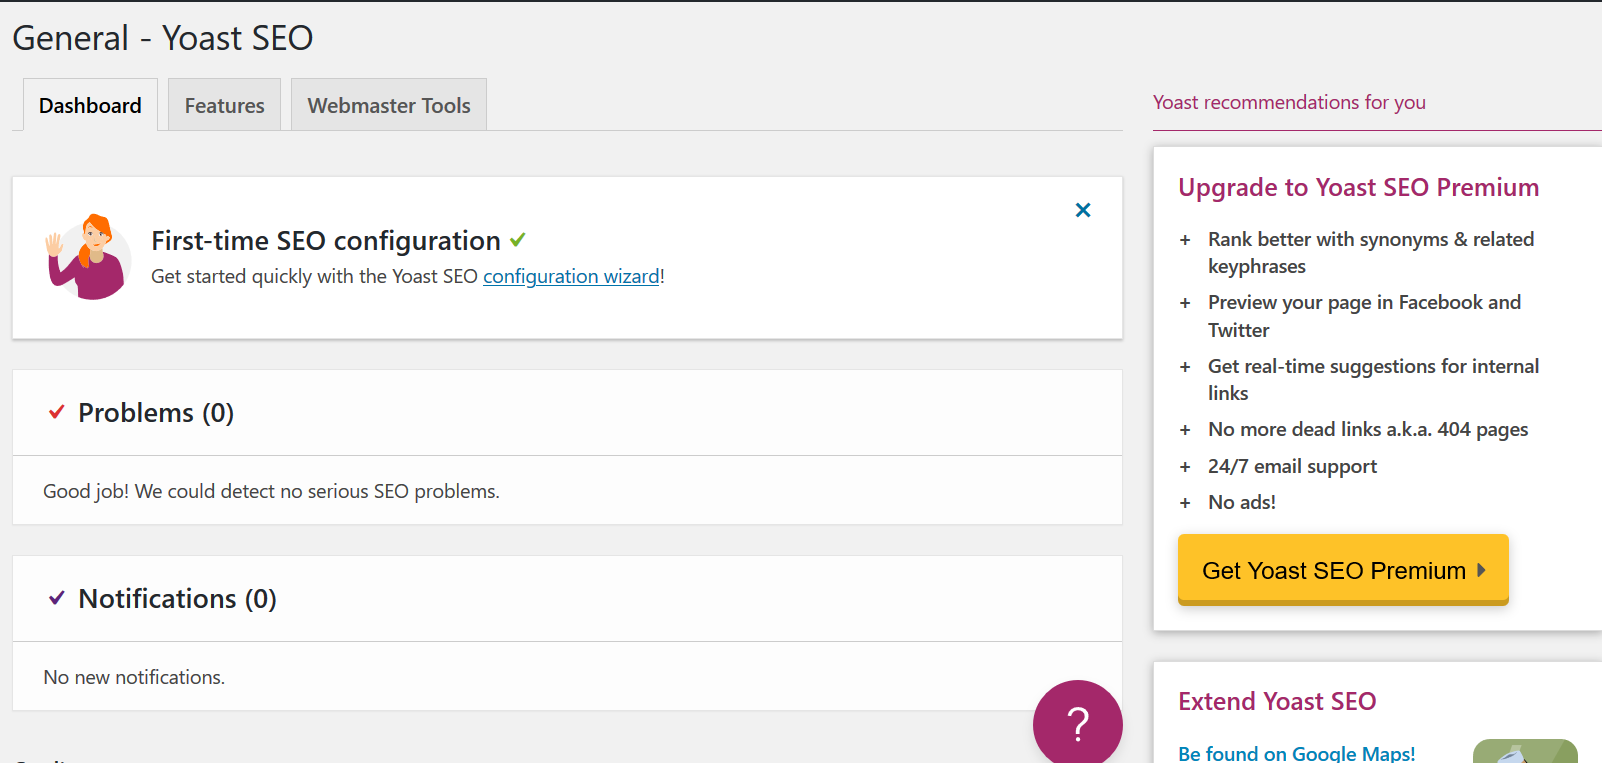 General features of Yoast SEO